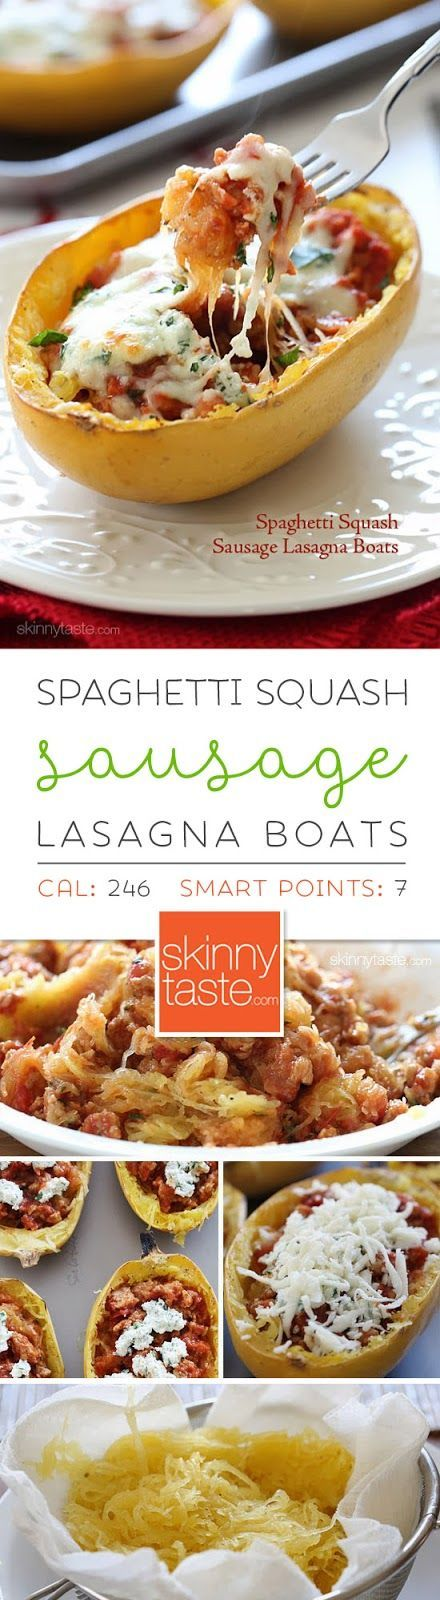 Spaghetti Squash Sausage Lasagna Boats. Servings: 6 • Size: 1 boat • Points +: 8 pts • Smart Points: 7 Calories: 246 • Fat: 13 g • Protein: 17 g • Carb: 17 g • Fiber: 2 g • Sugar: 7 g  Sodium: 701 mg • Cholesterol: 71 mg